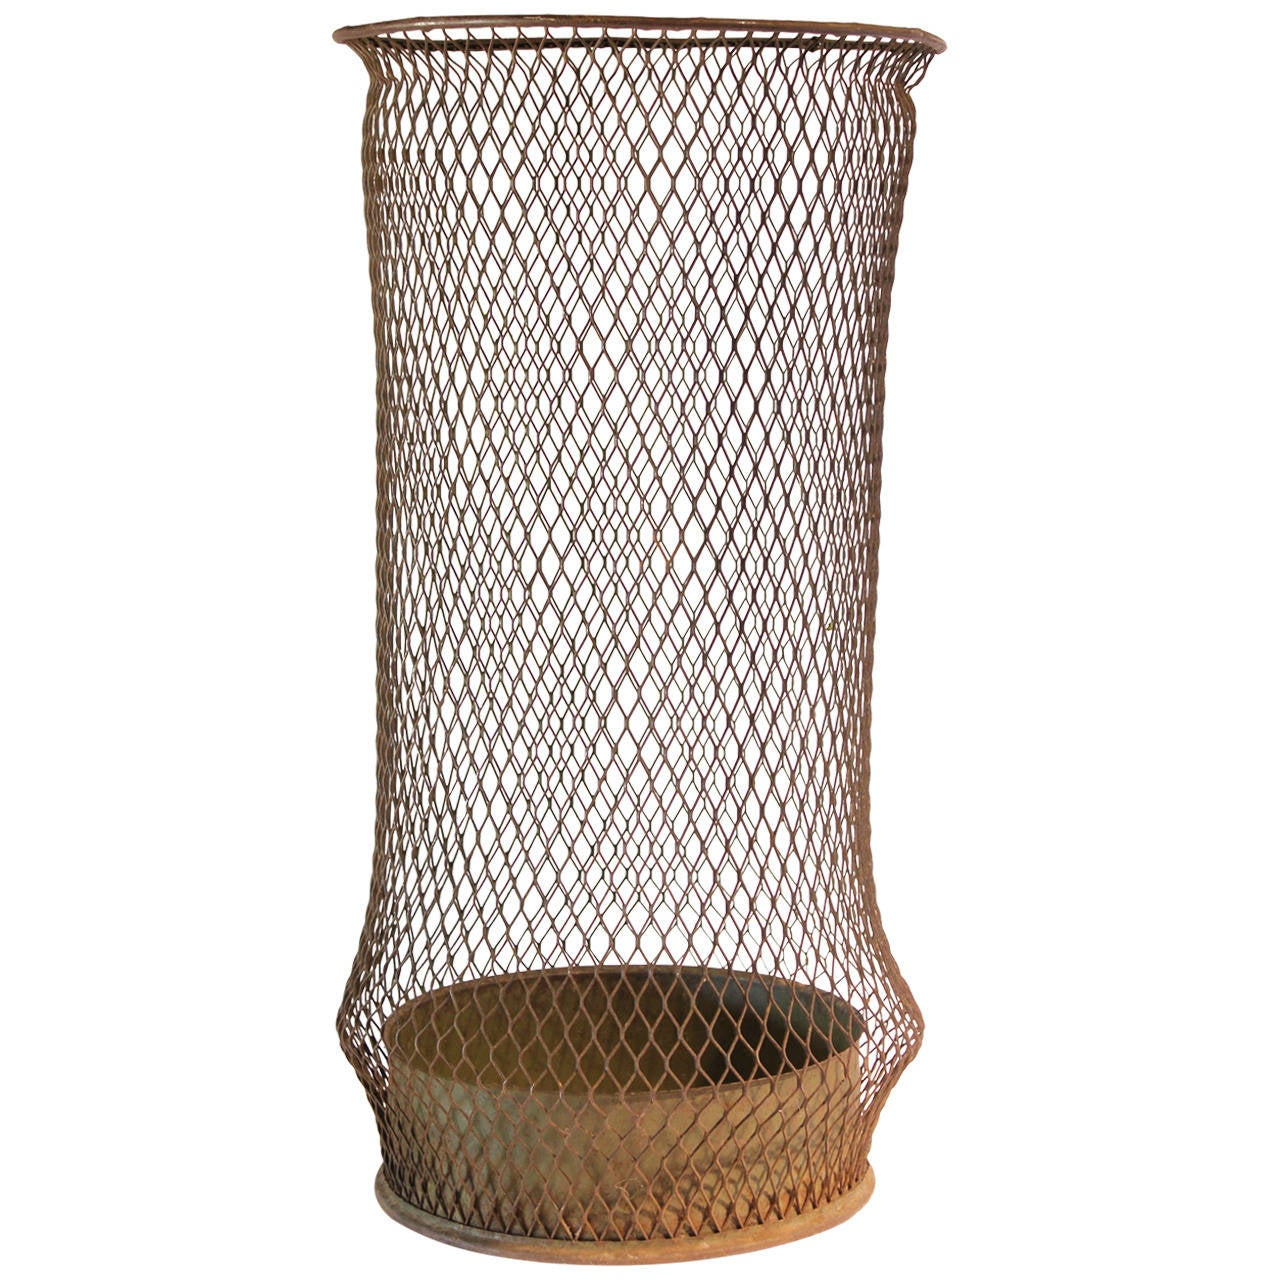 Waste Baskets : Early 20thy Century Tall American Industrial Waste Basket at 1stdibs